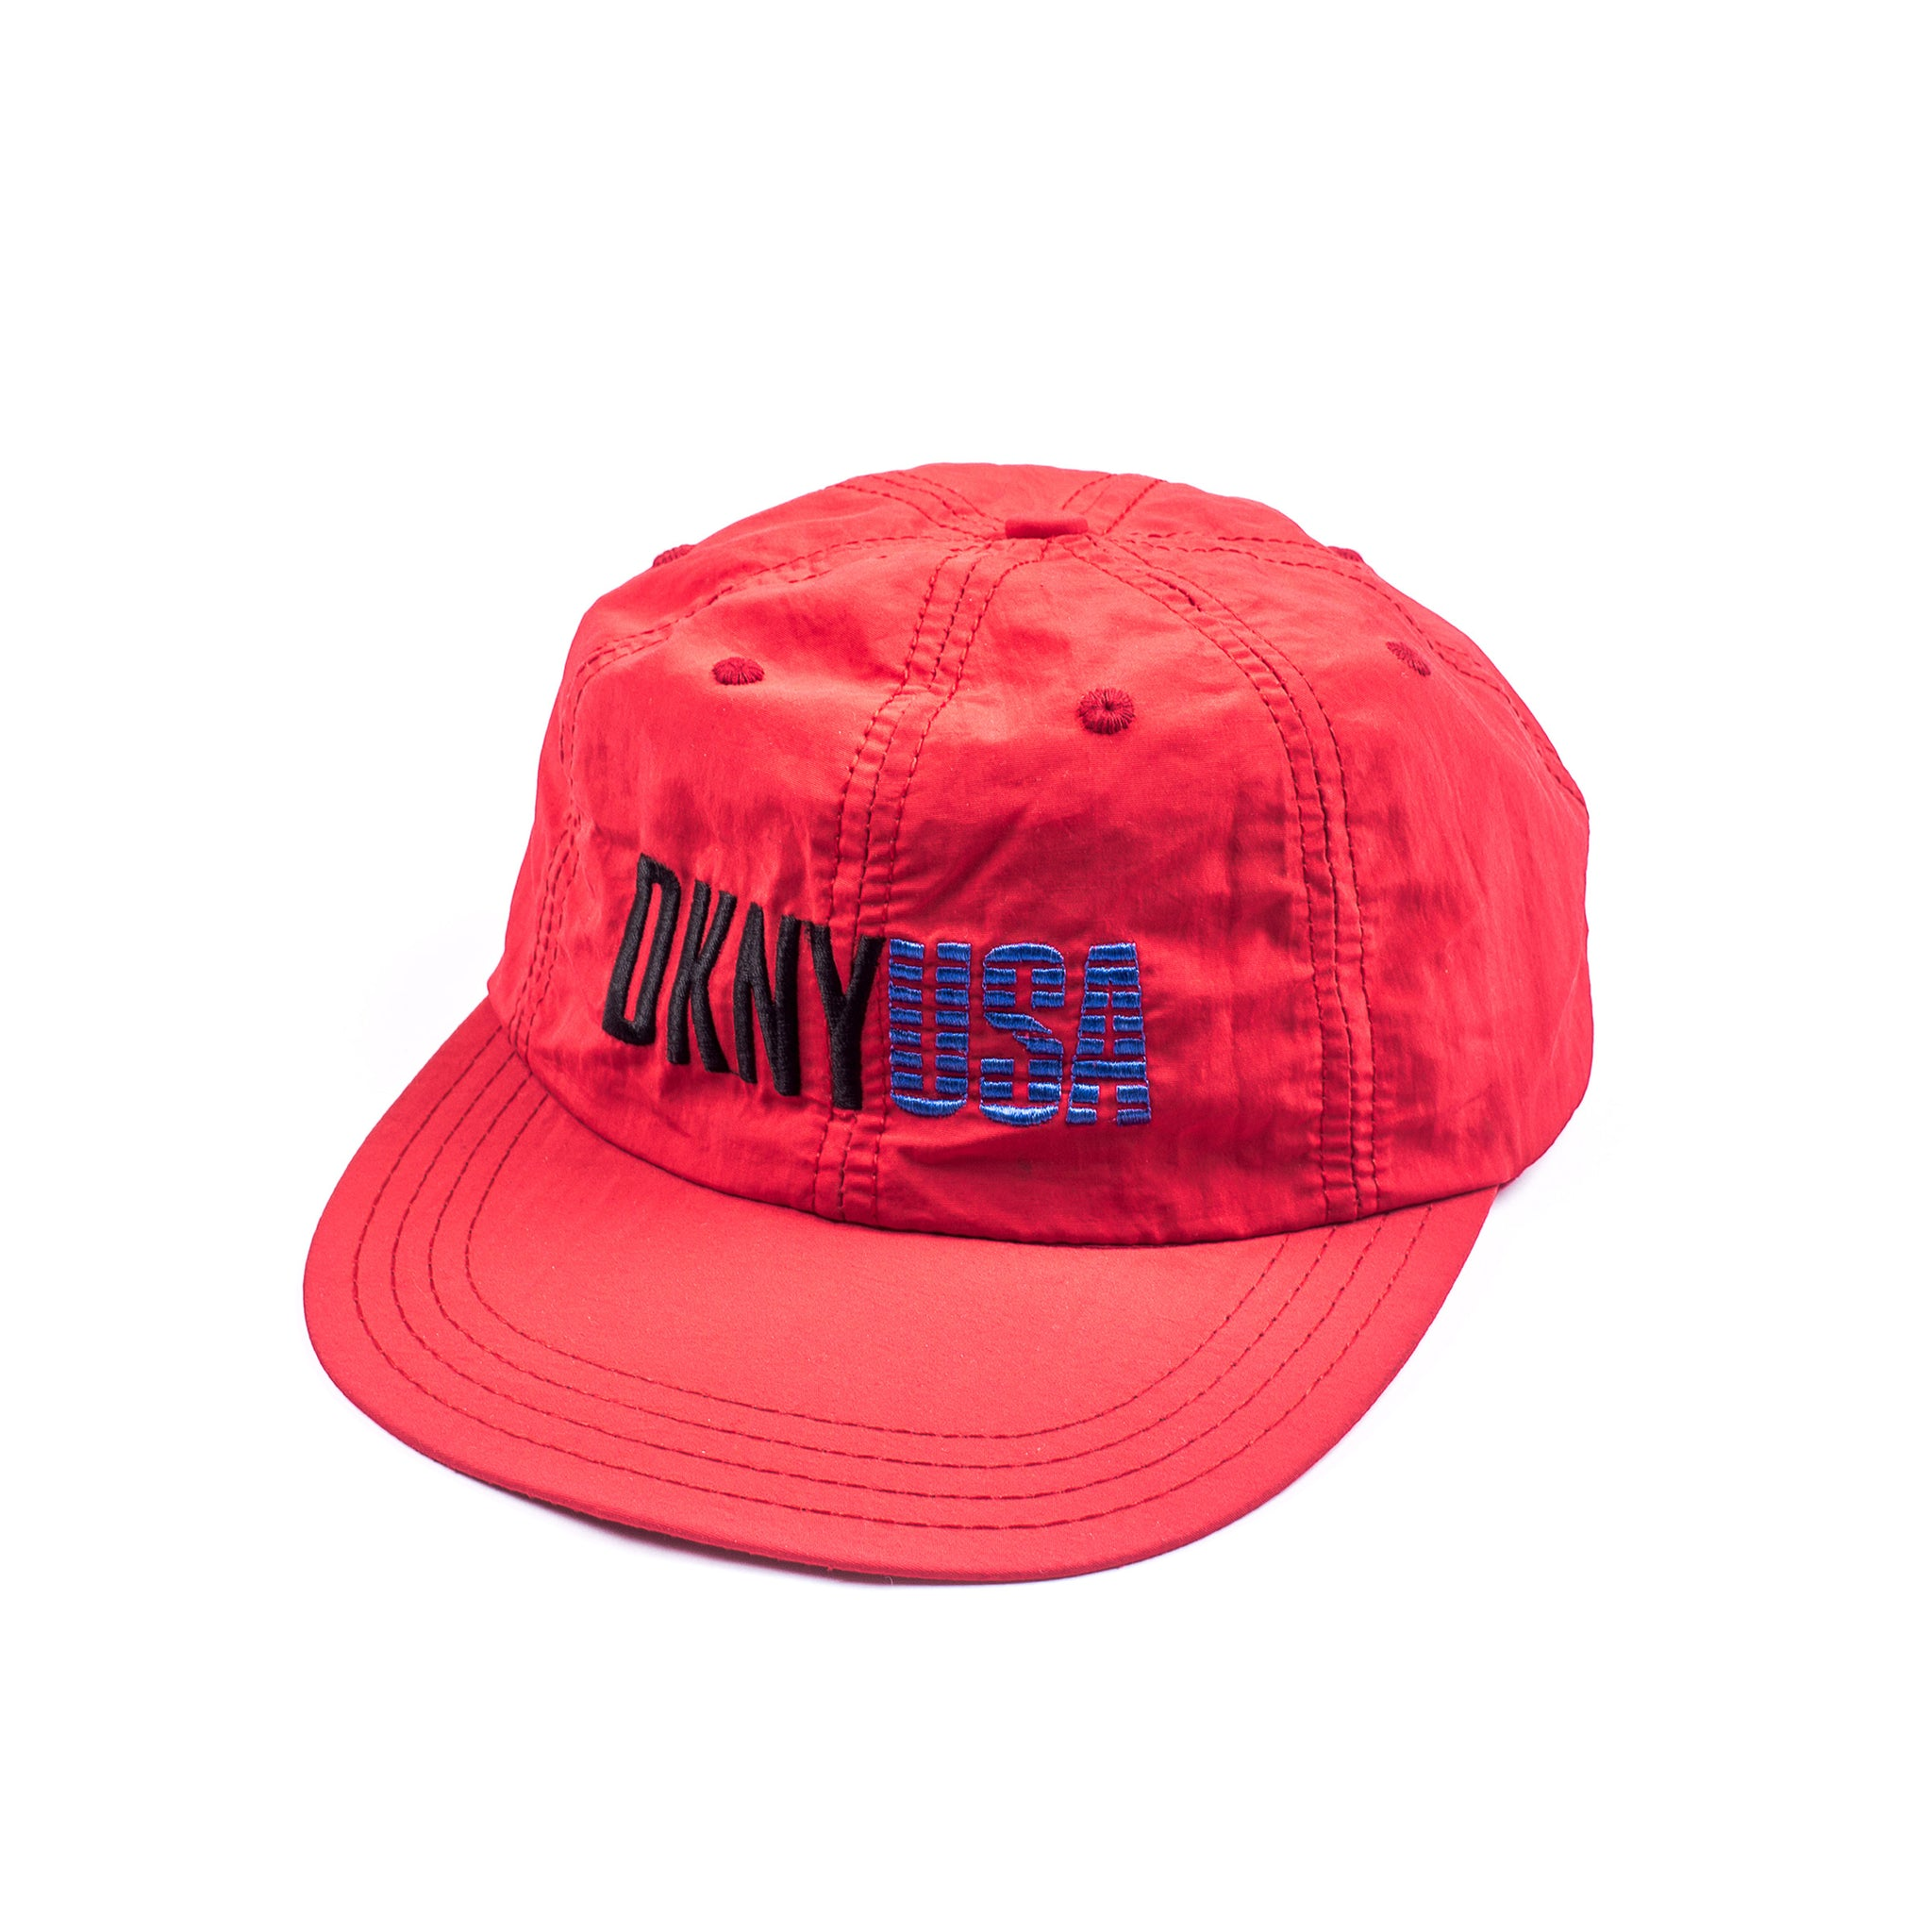 DKNY USA Red 6 Panel Hat – Better™ Gift Shop b517206ac92b